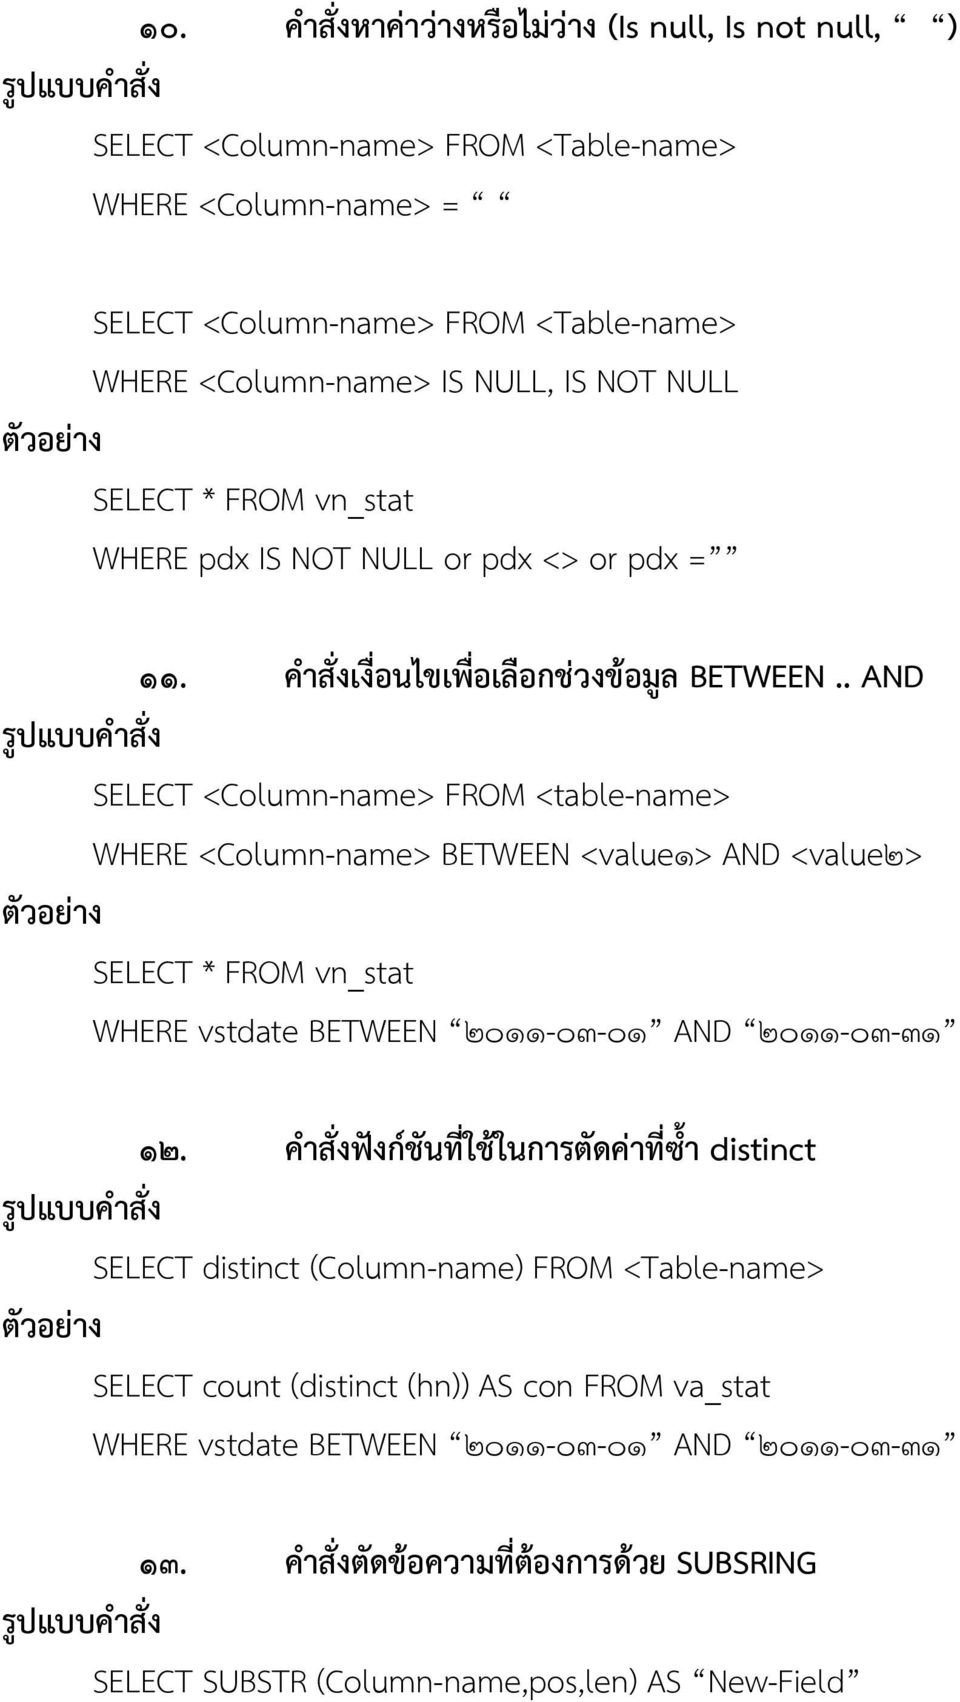 . AND ร ปแบบคาส ง SELECT <Column-name> FROM <table-name> WHERE <Column-name> BETWEEN <value1> AND <value2> ต วอย าง SELECT * FROM vn_stat WHERE vstdate BETWEEN 2011-03-01 AND 2011-03-31 ๑๒.